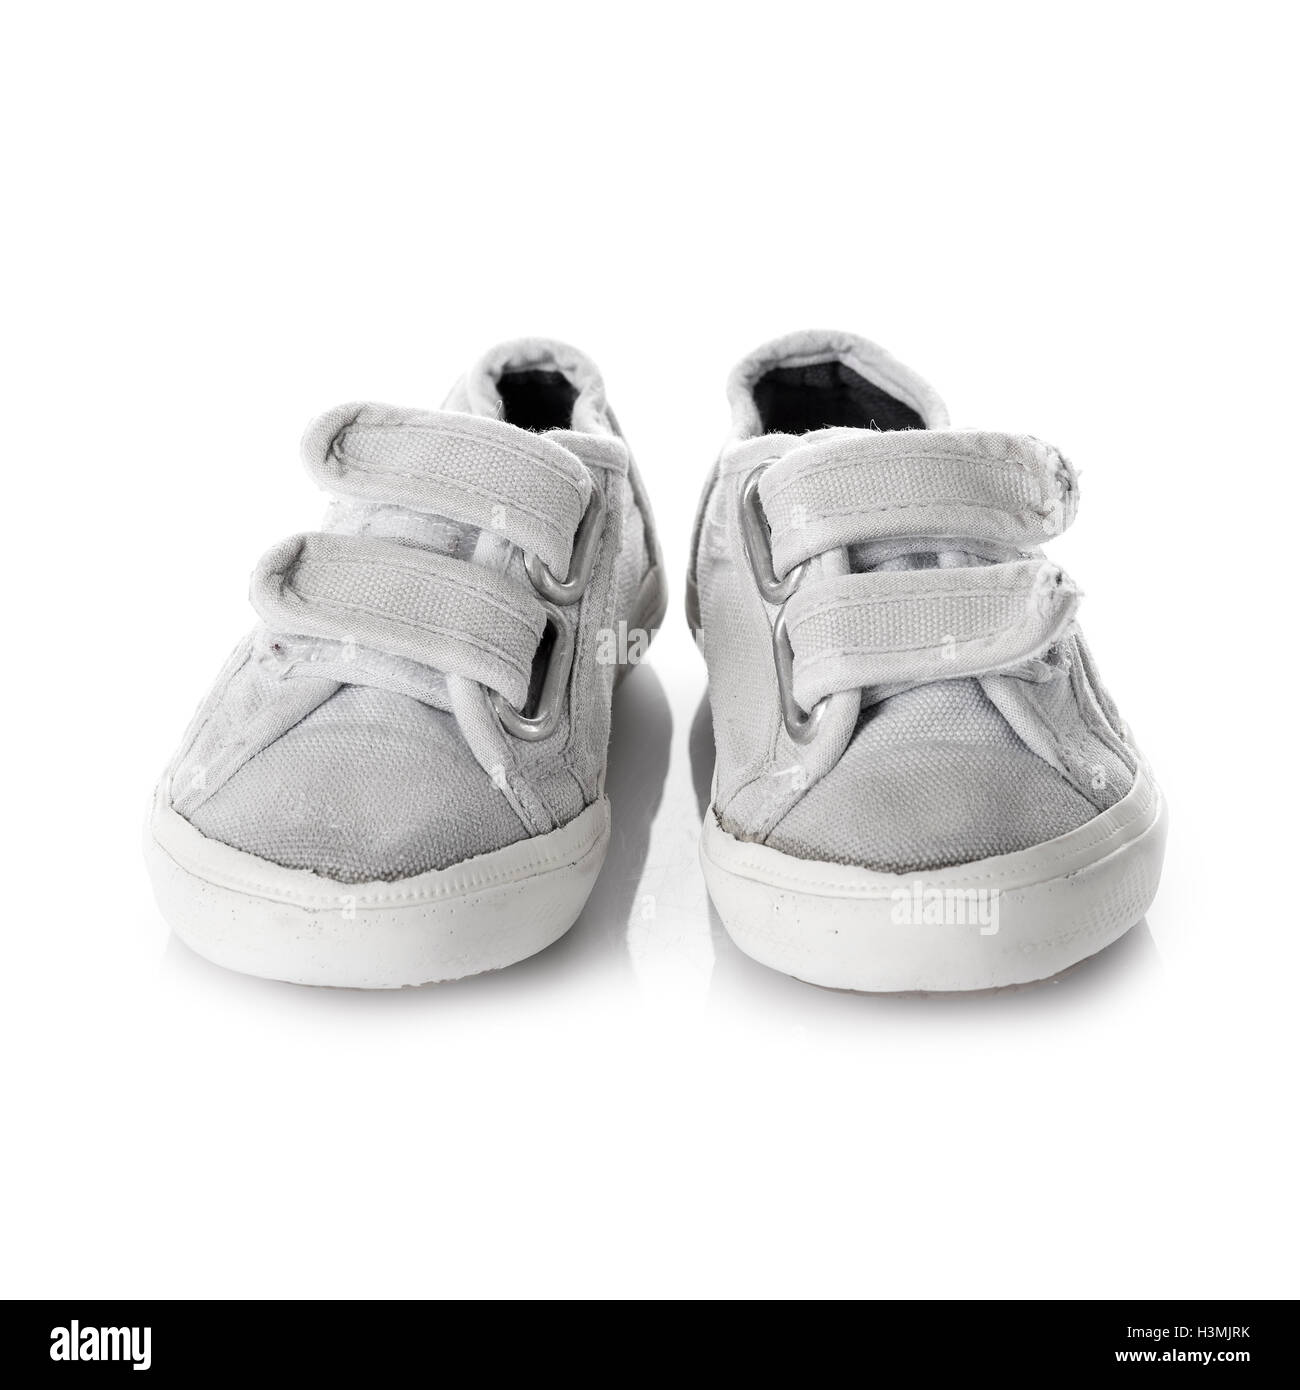 Sneakers shoes for kids with velcro fastening isolated on white background - Stock Image